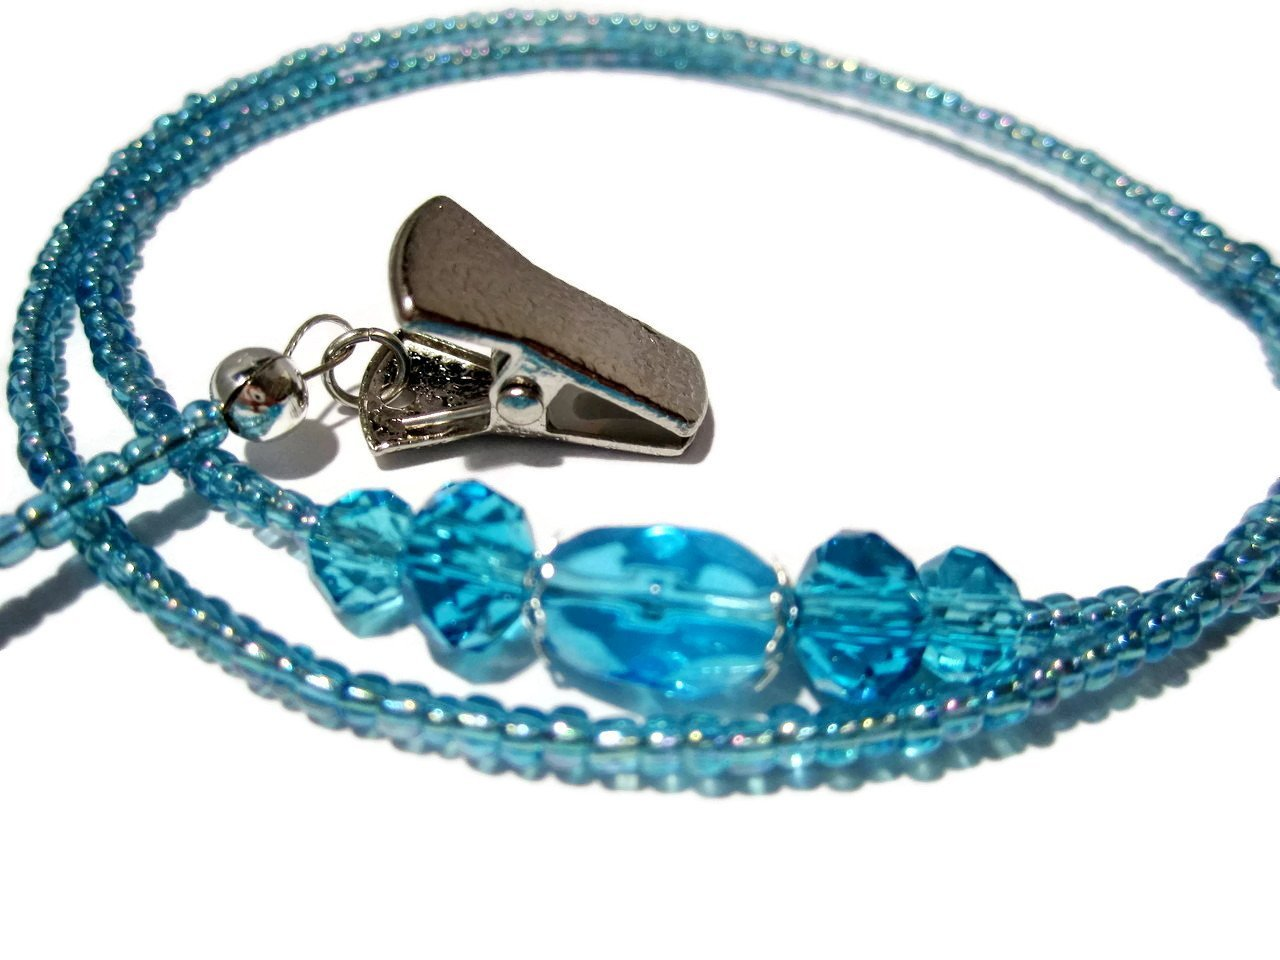 ATLanyards Bright Blue Eyeglass Holder - Beaded Eyeglass Chain With Clips by ATLanyards